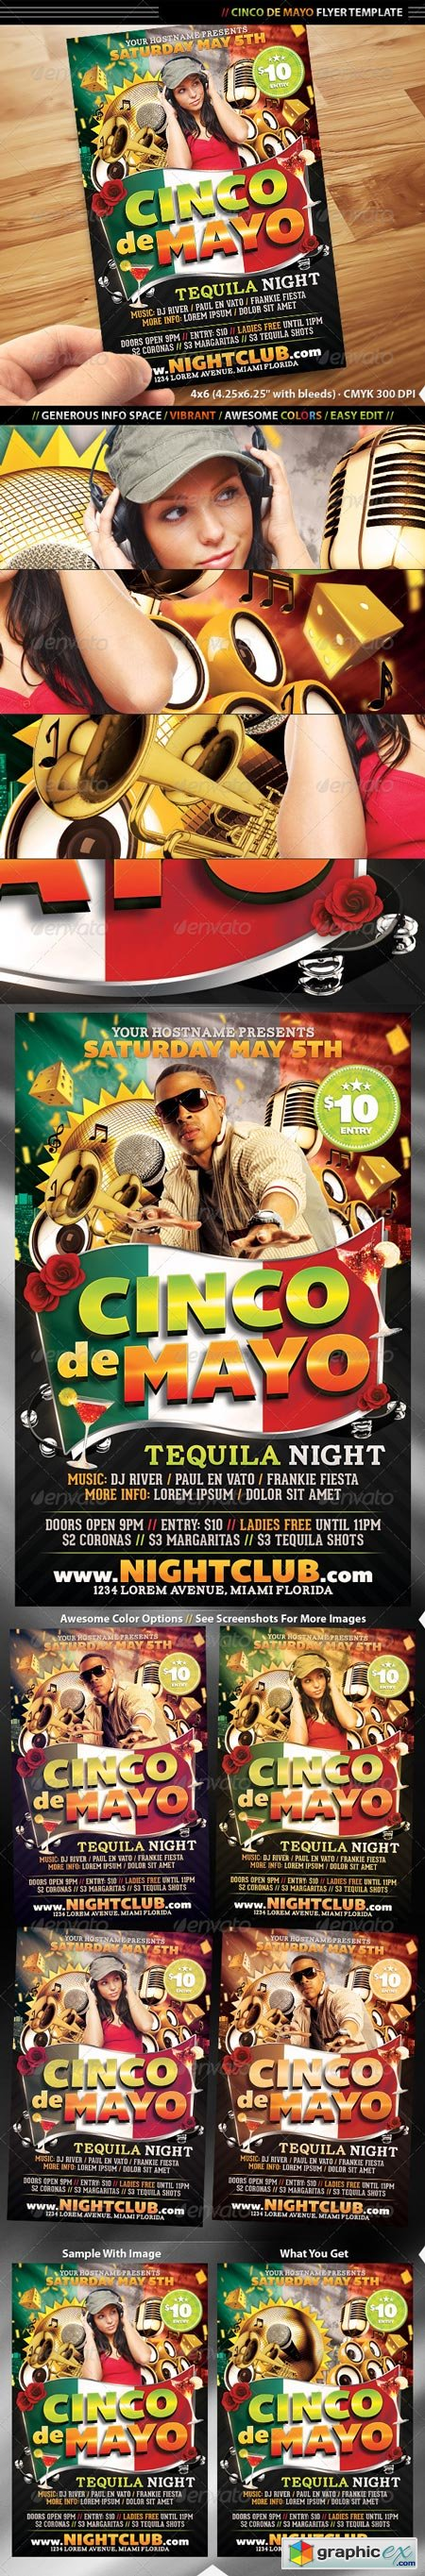 Cinco De Mayo Flyer Template 1849422